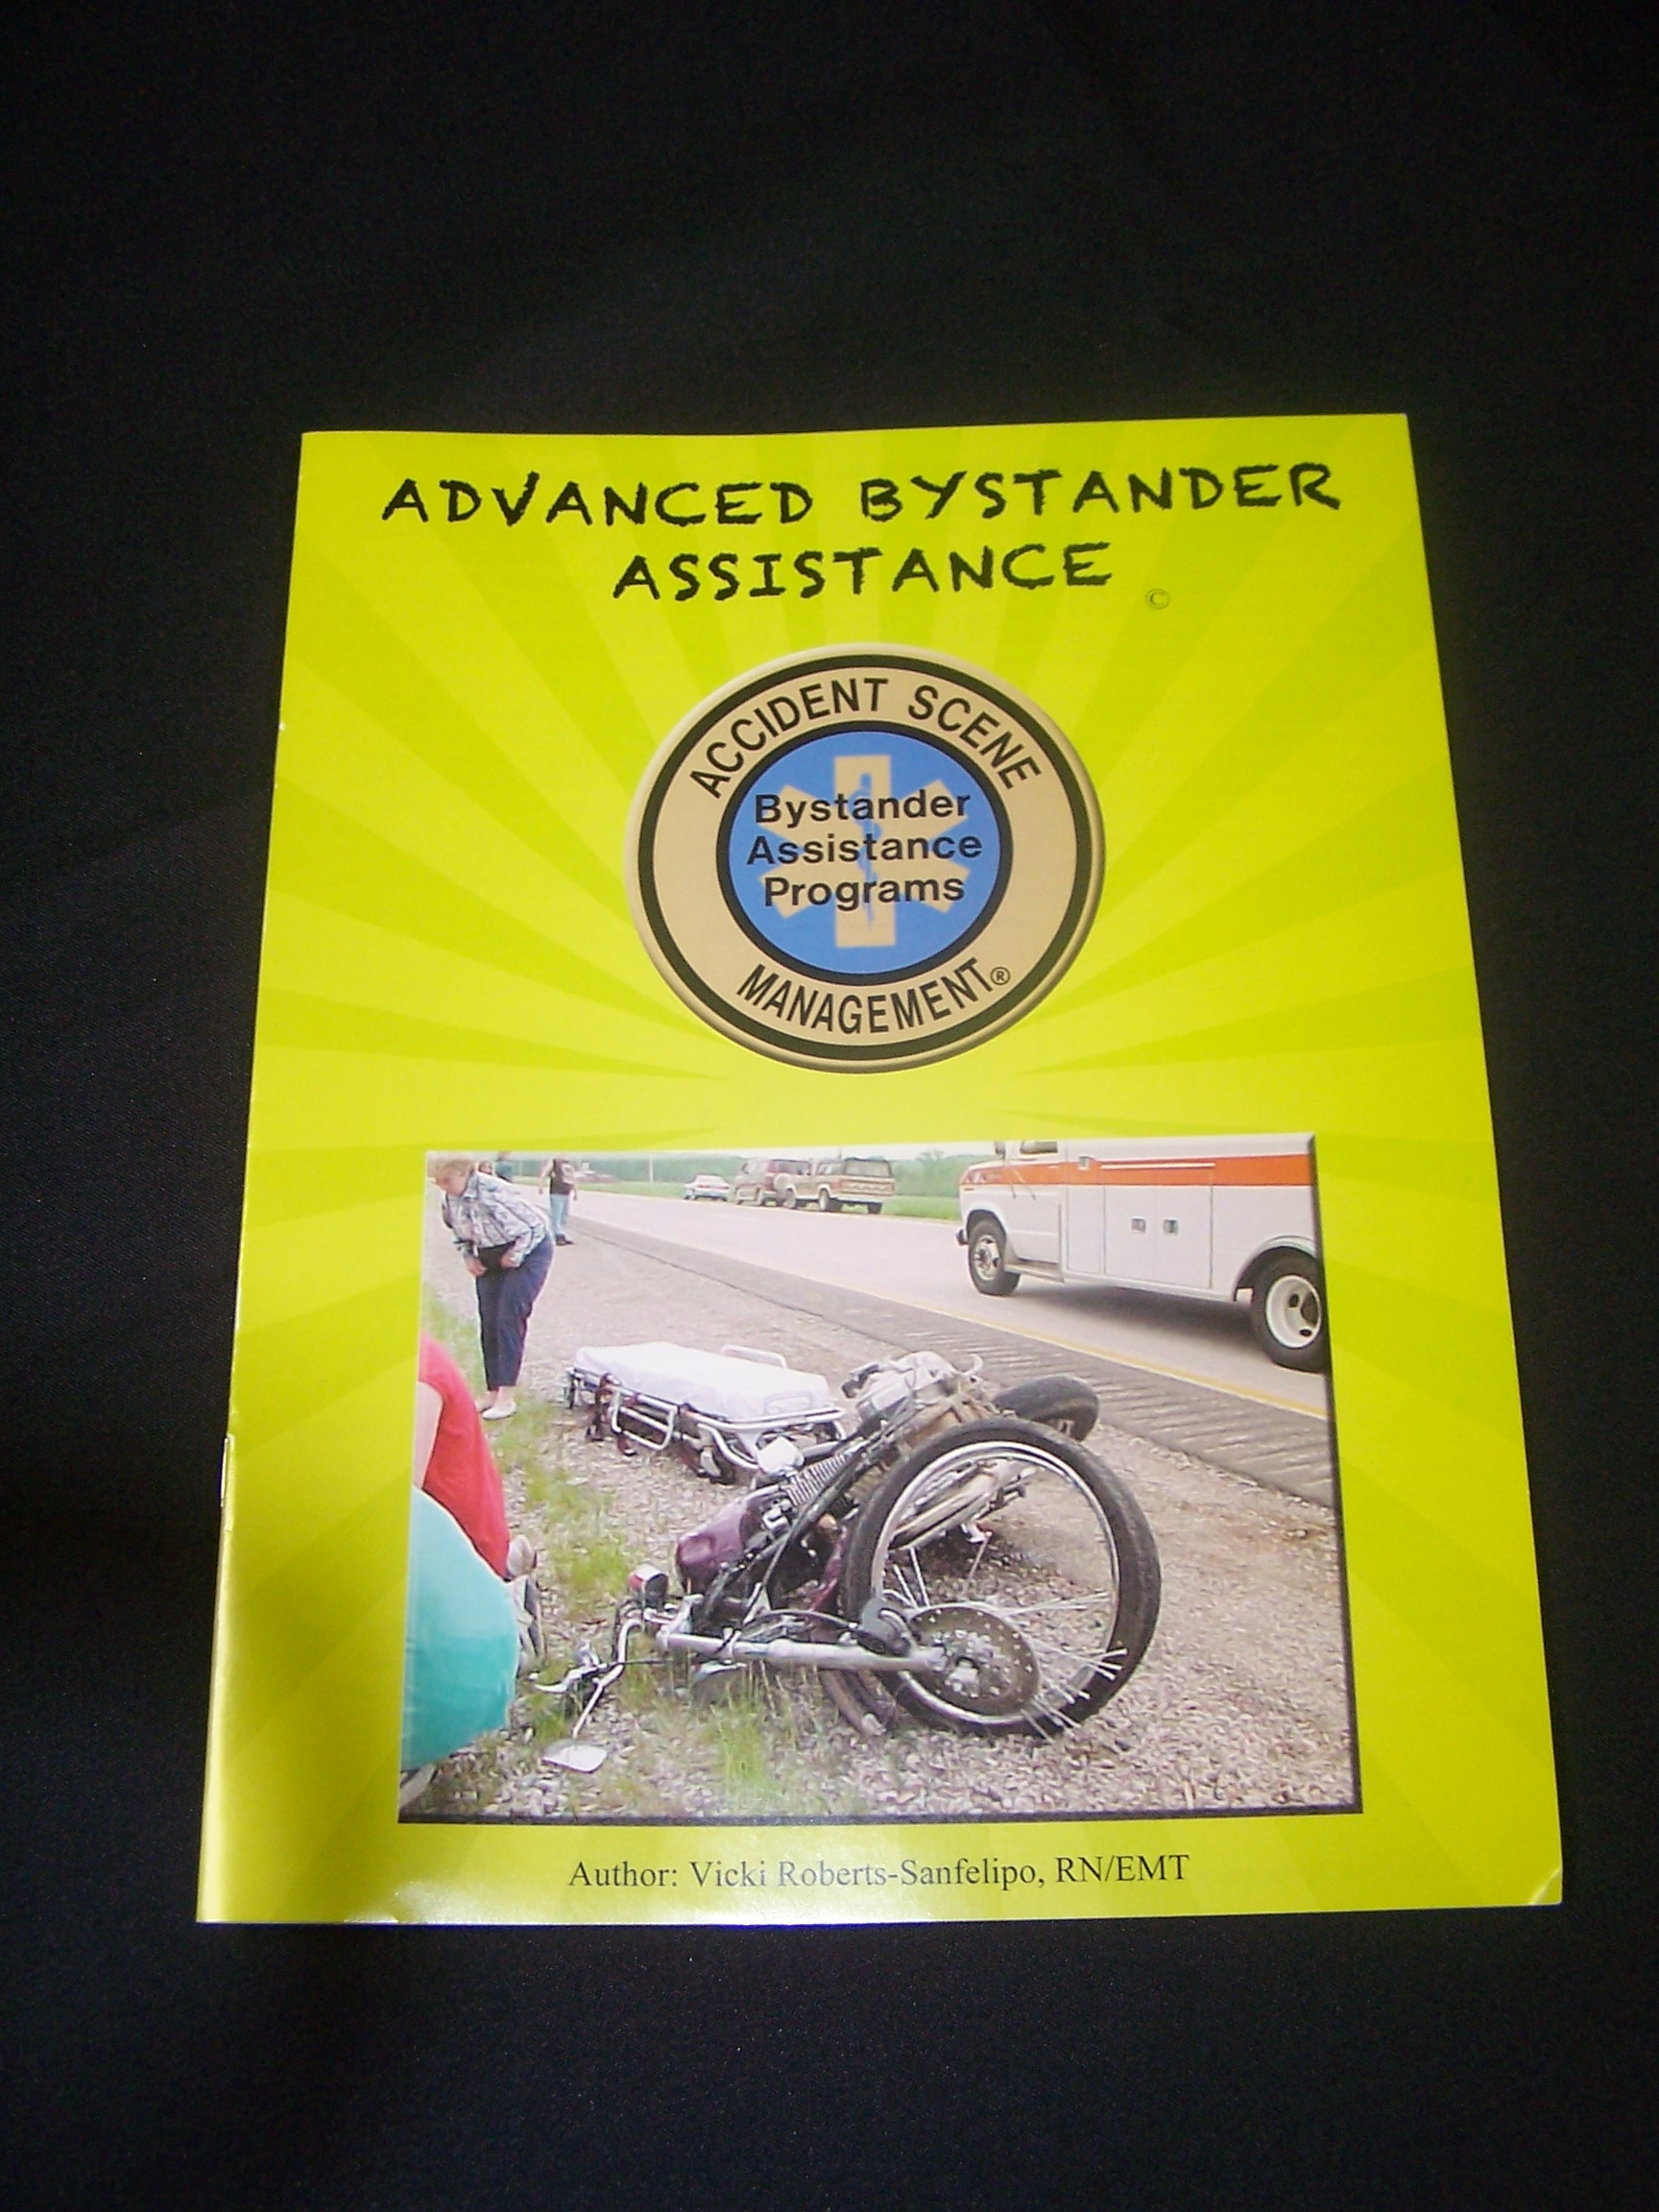 Advanced Bystander Assistance